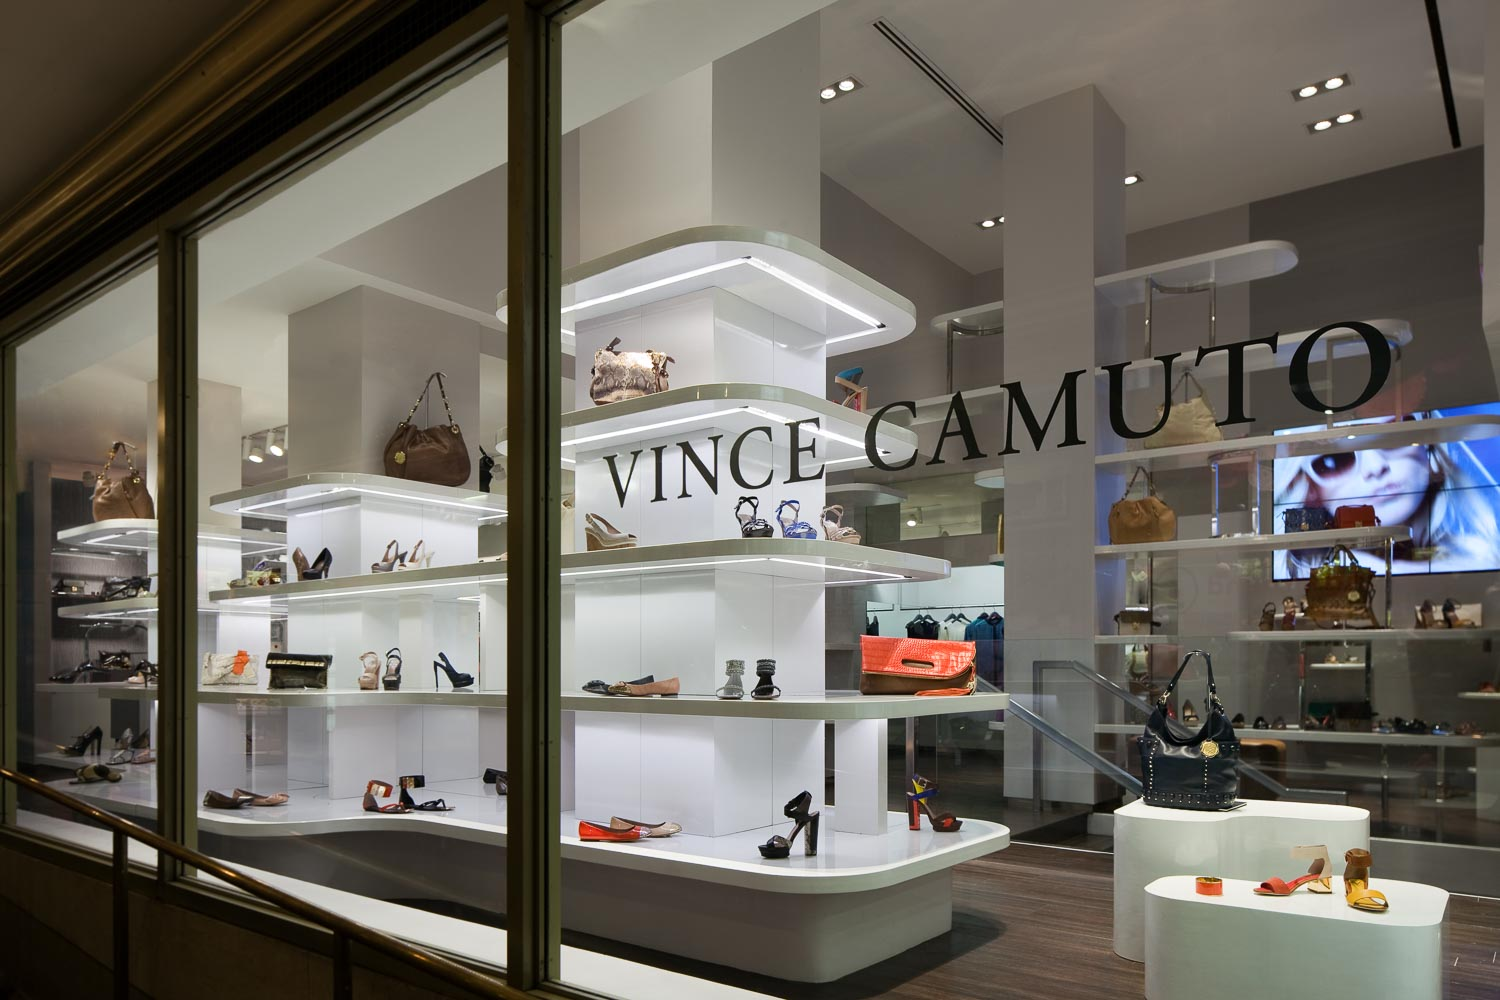 Vince Camuto Shoe Store Design - New York